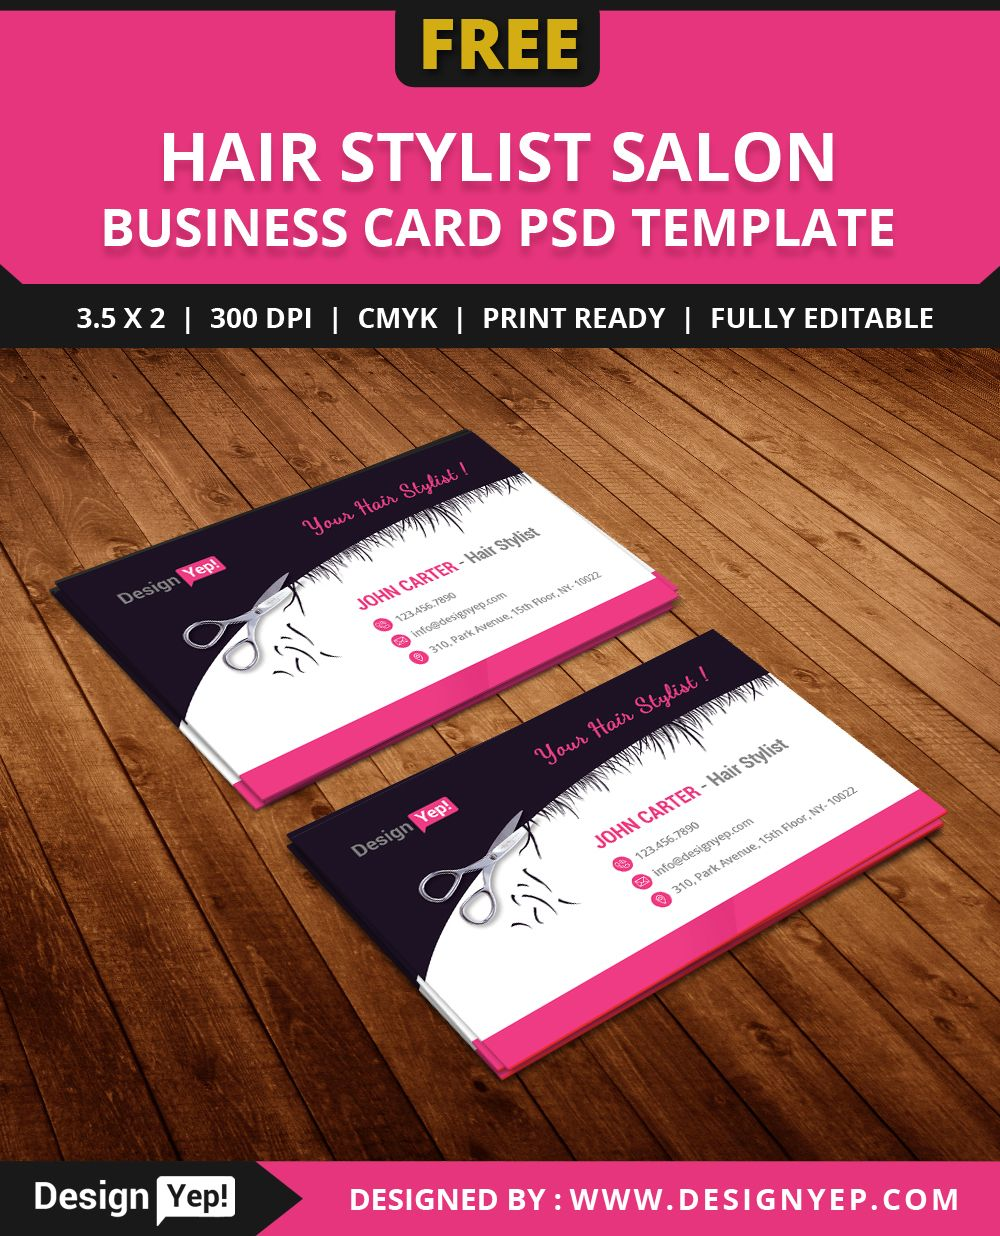 Free hair stylist salon business card template psd free business free hair stylist salon business card template psd magicingreecefo Images